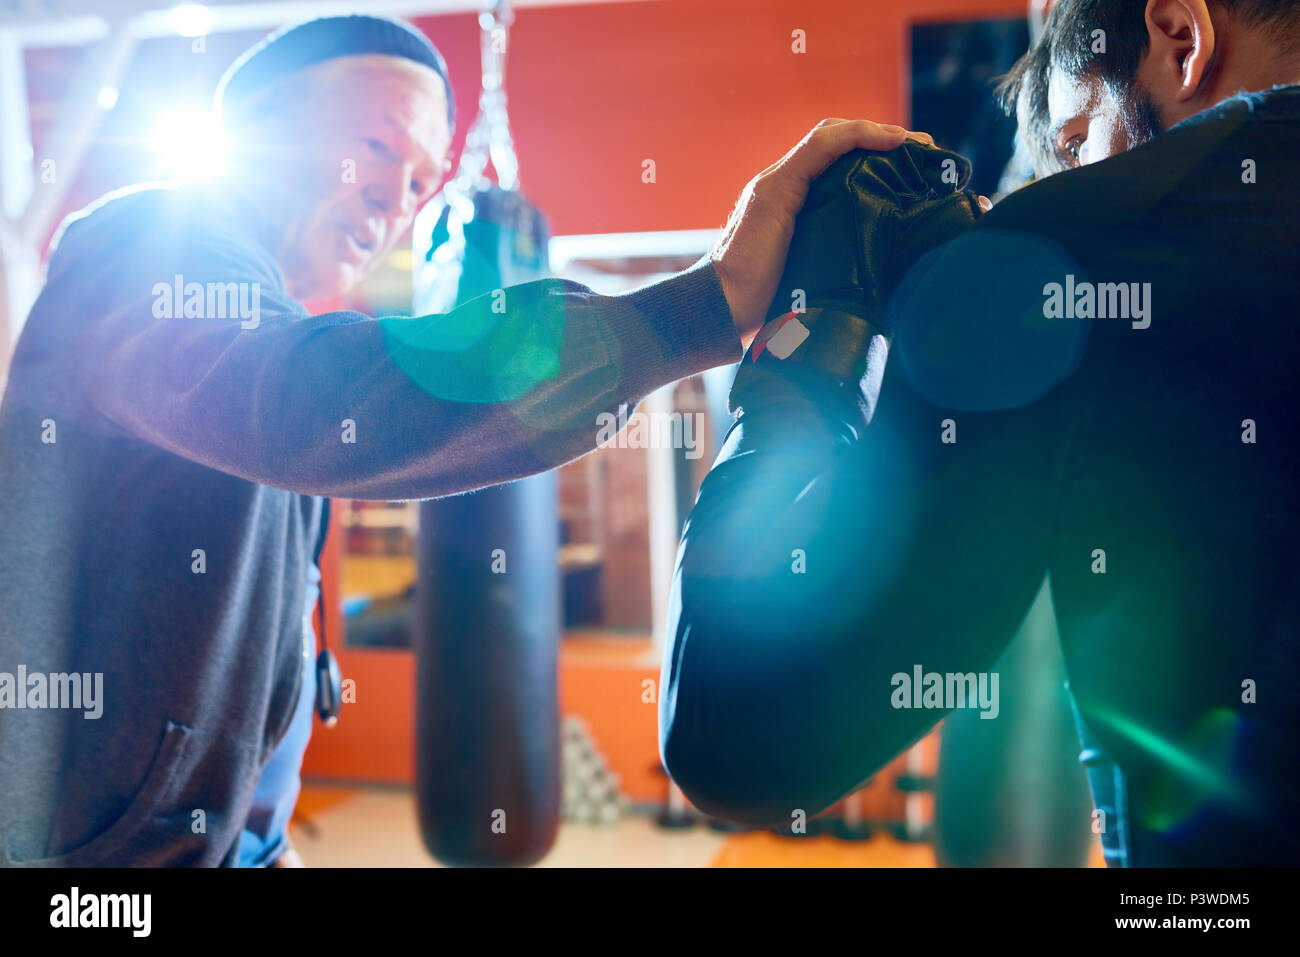 Trainer showing techniques to boxer Stock Photo